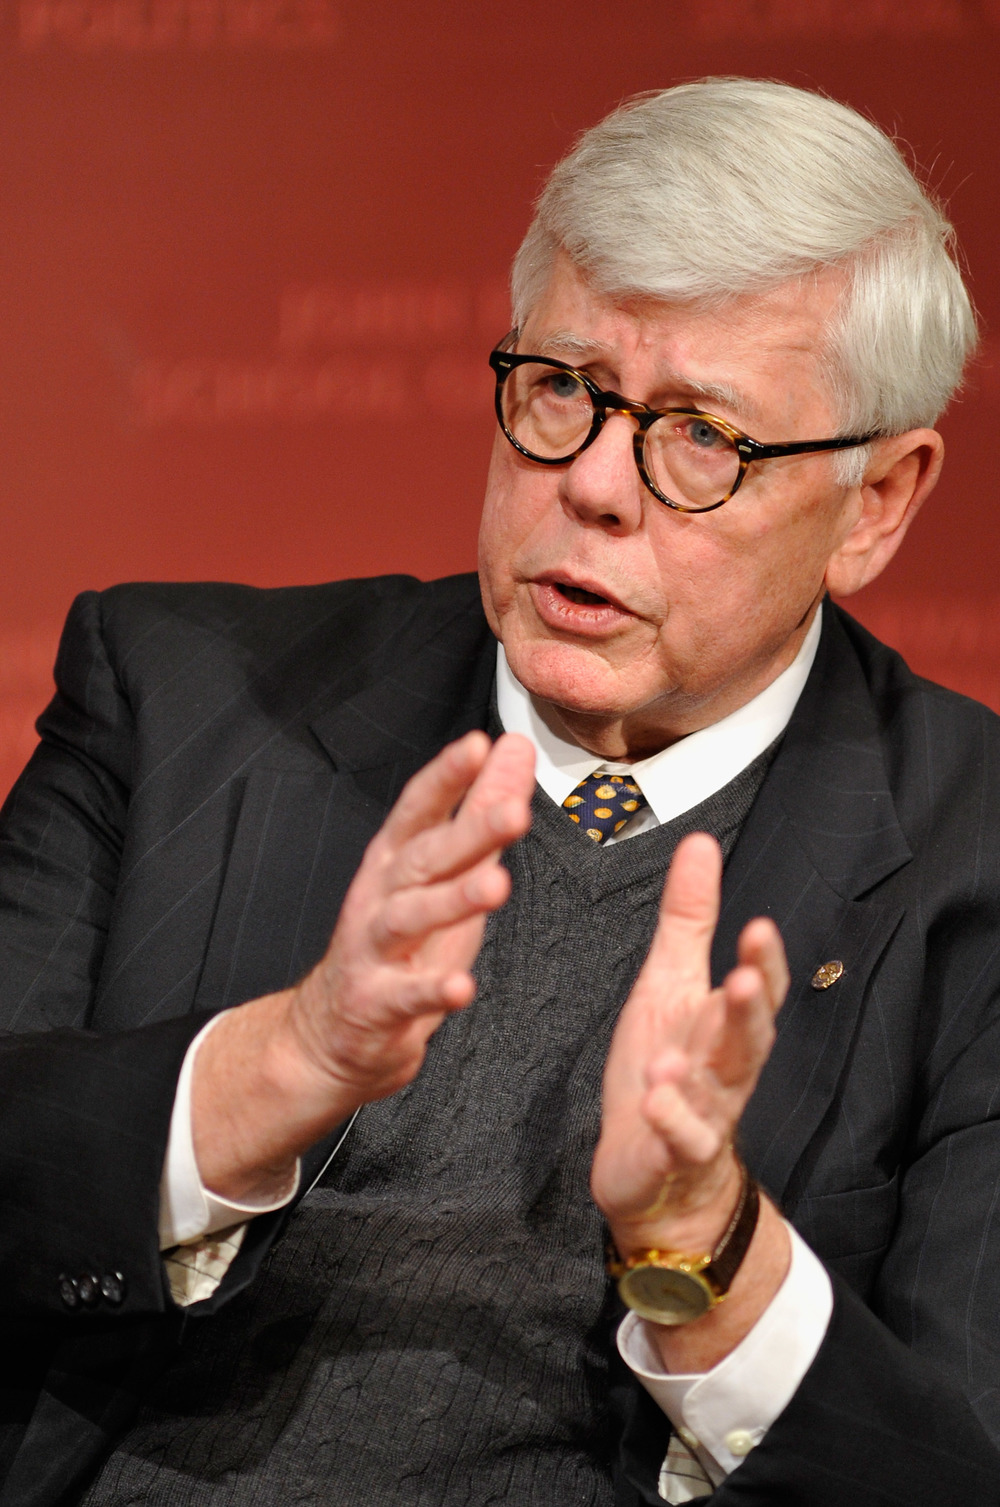 NRA's David Keene at Harvard